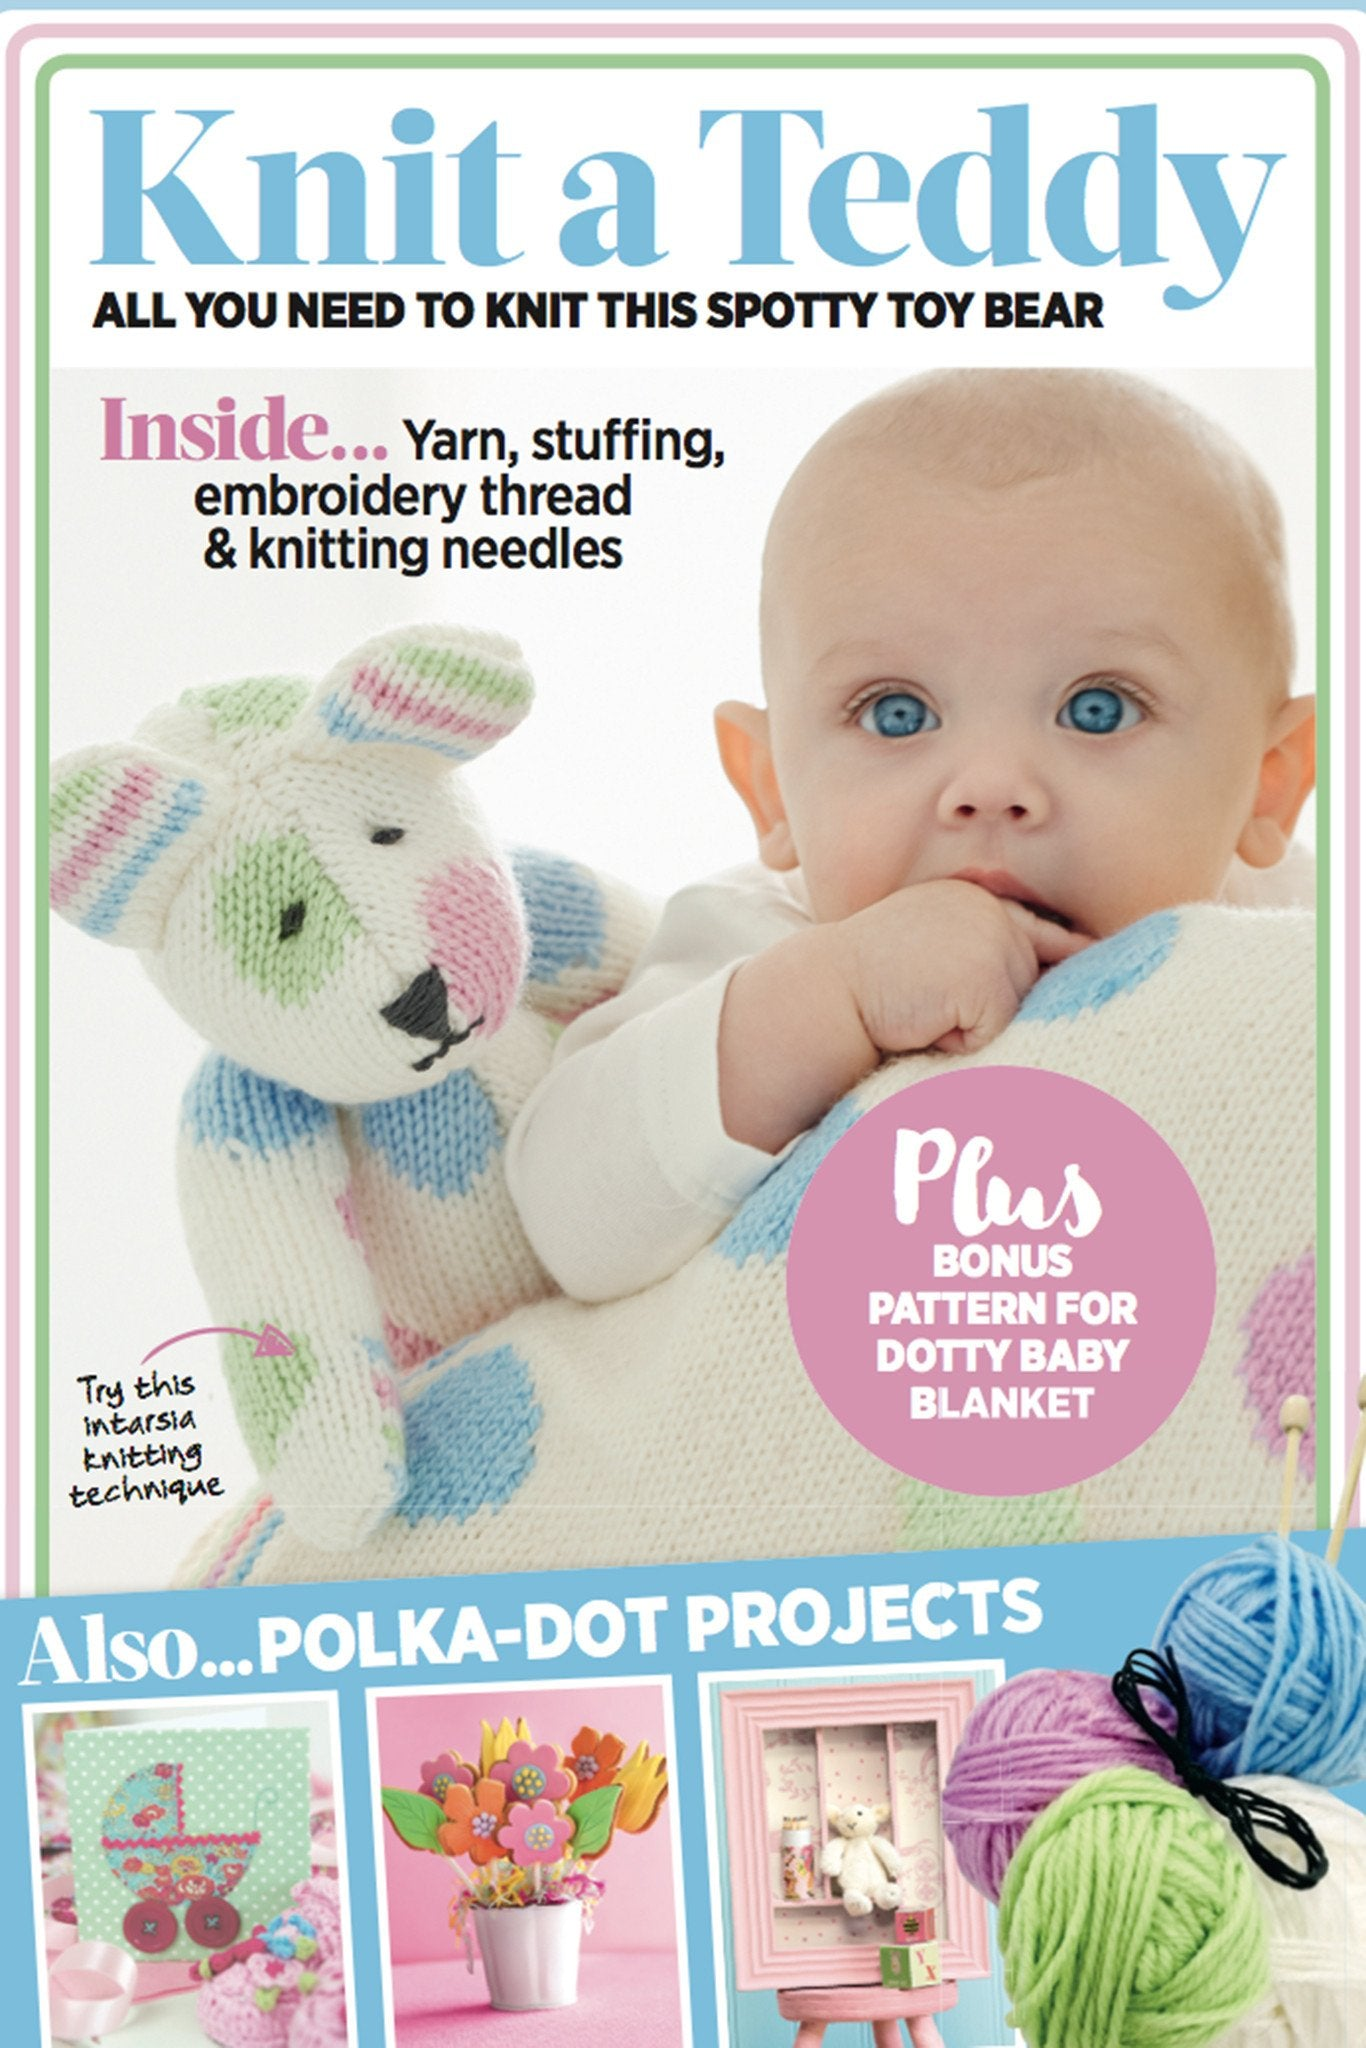 Spotty Teddy Bear Knitting Kit With Yarn – The Knitting Network